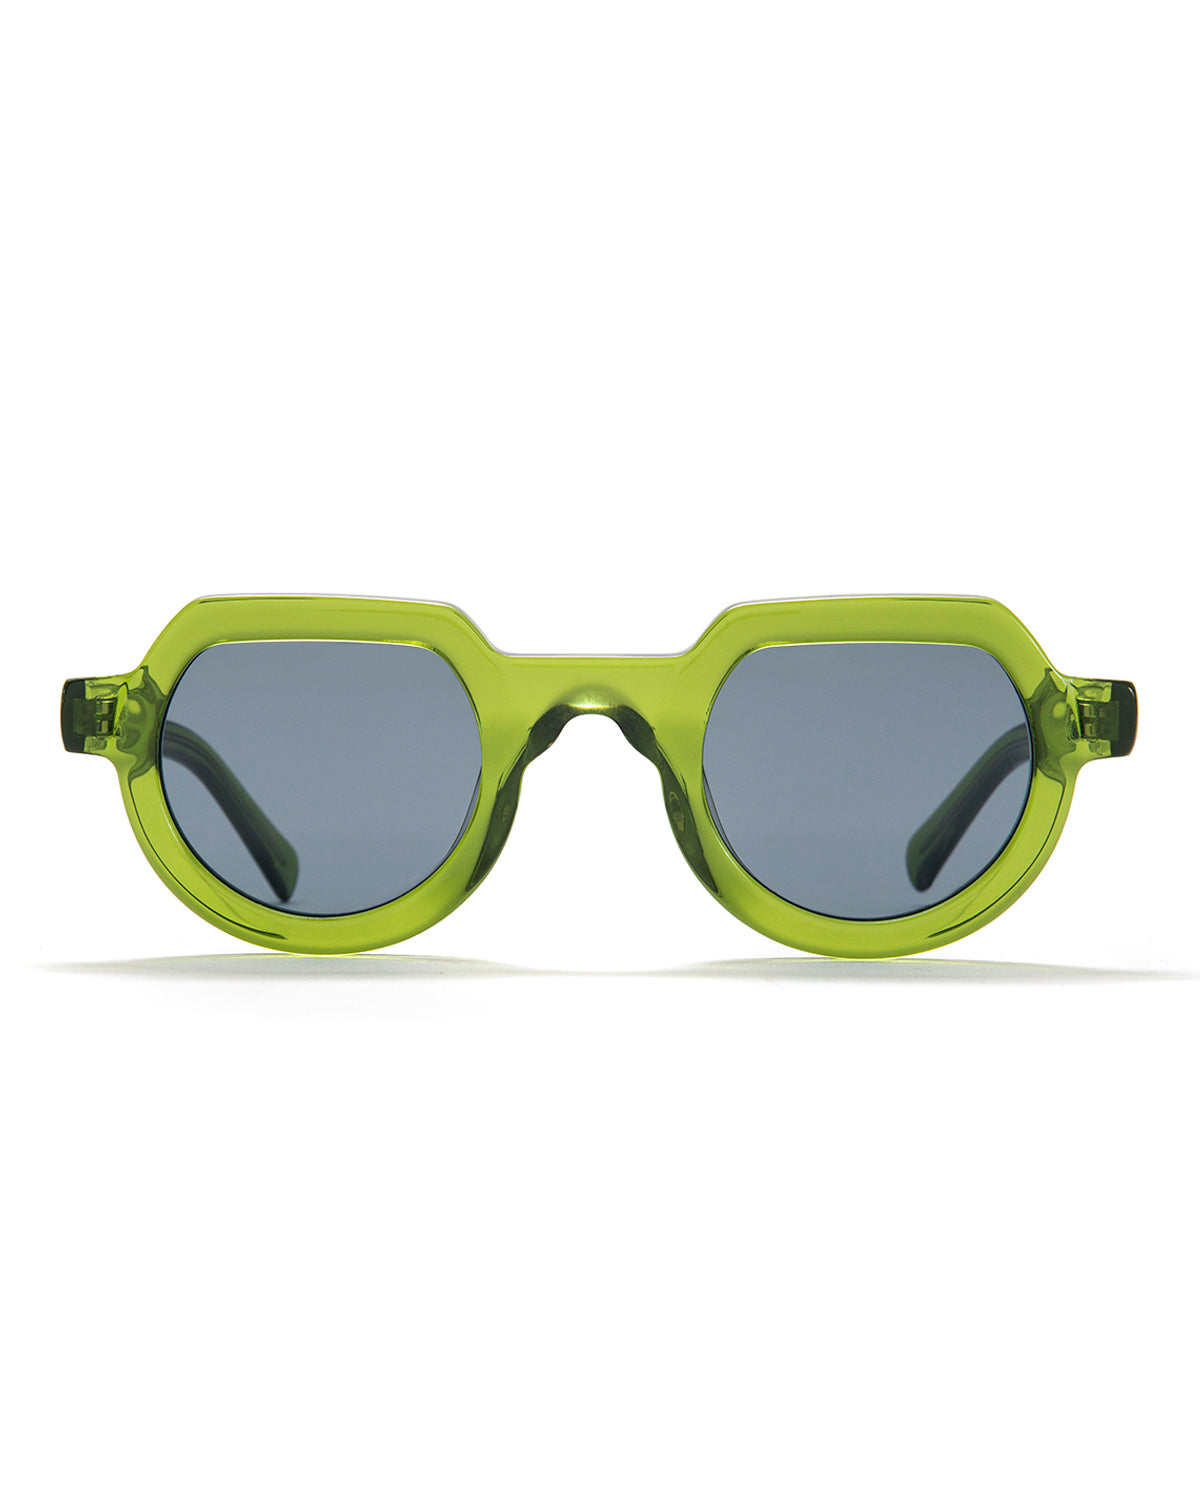 Tani Sunglasses - Translucent Green - Brain Dead